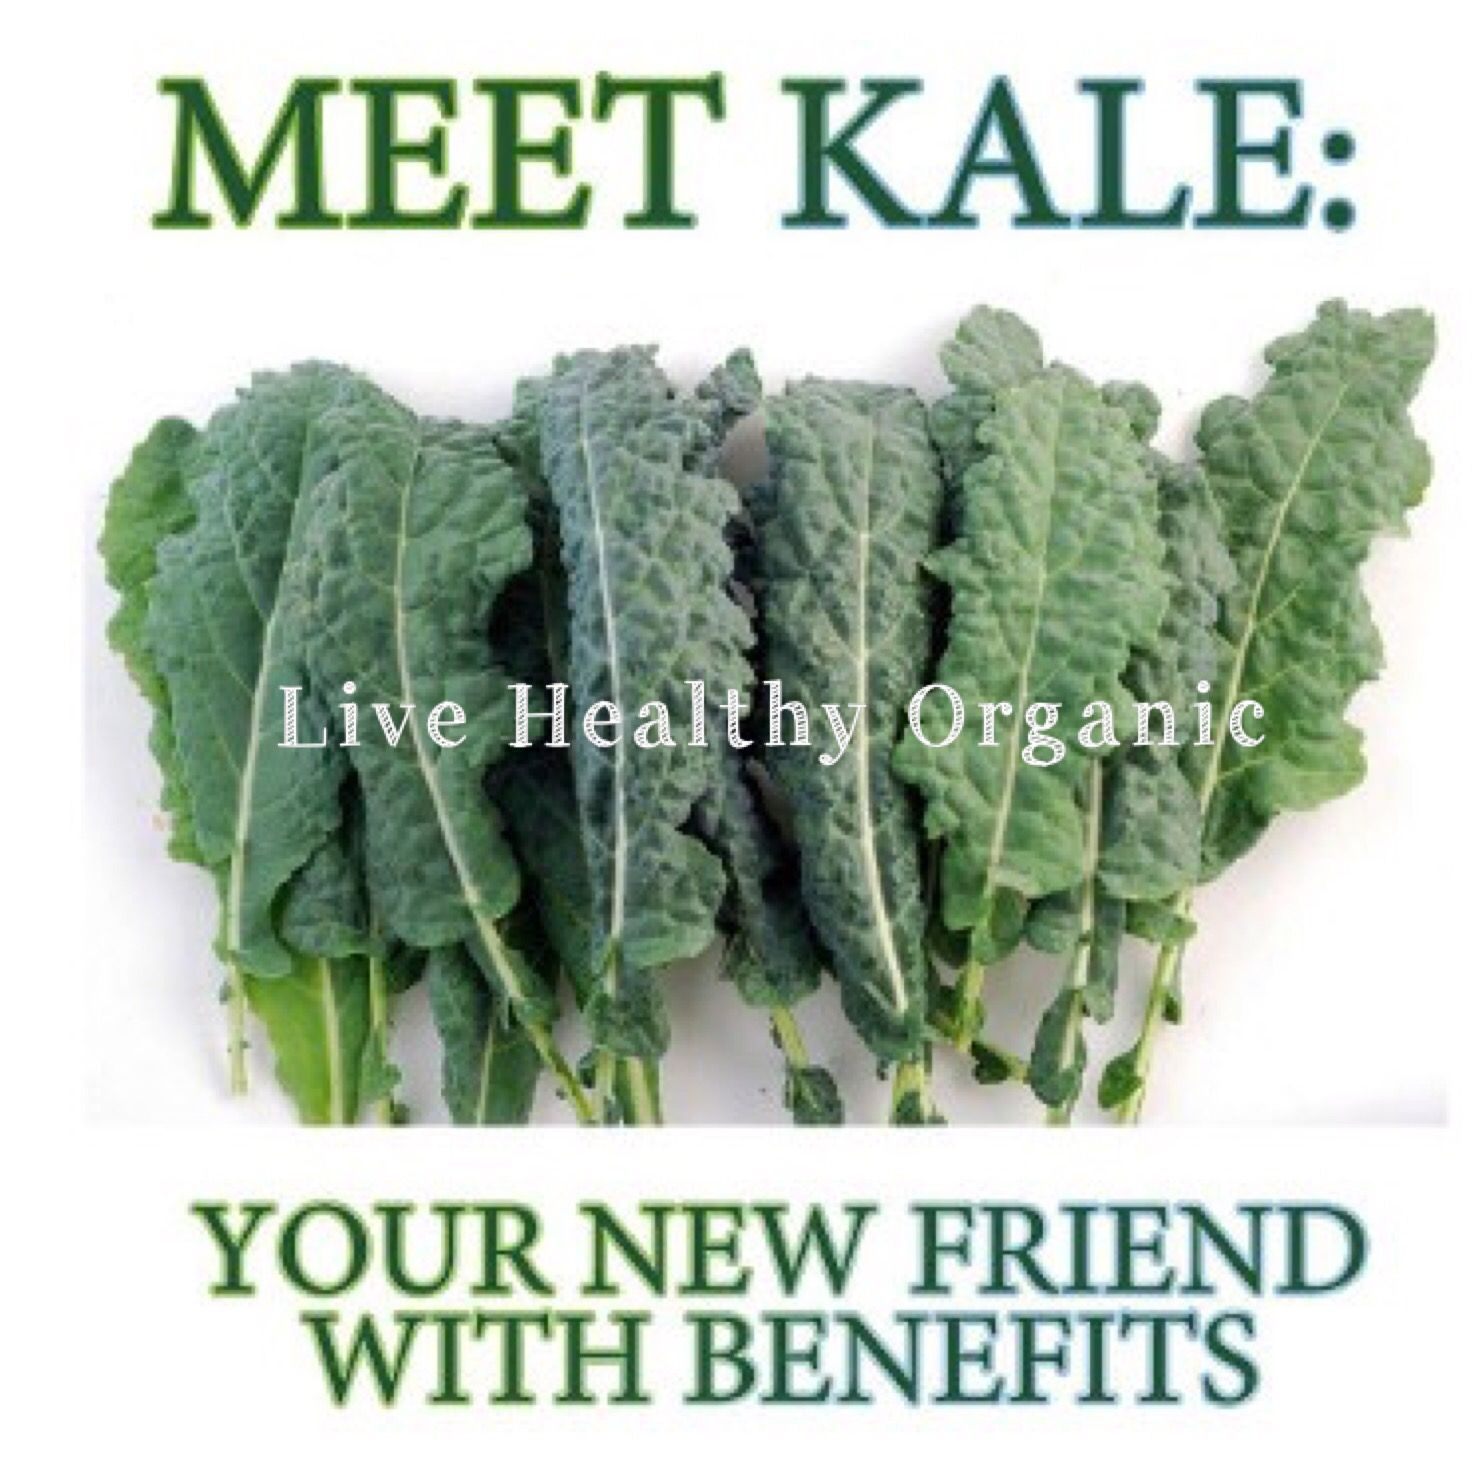 Kale-The Queen👑of Greens •Anti-inflammatory •Antioxidants •More iron than beef •More calcium than milk •684% vitamin K •134% vitamin C